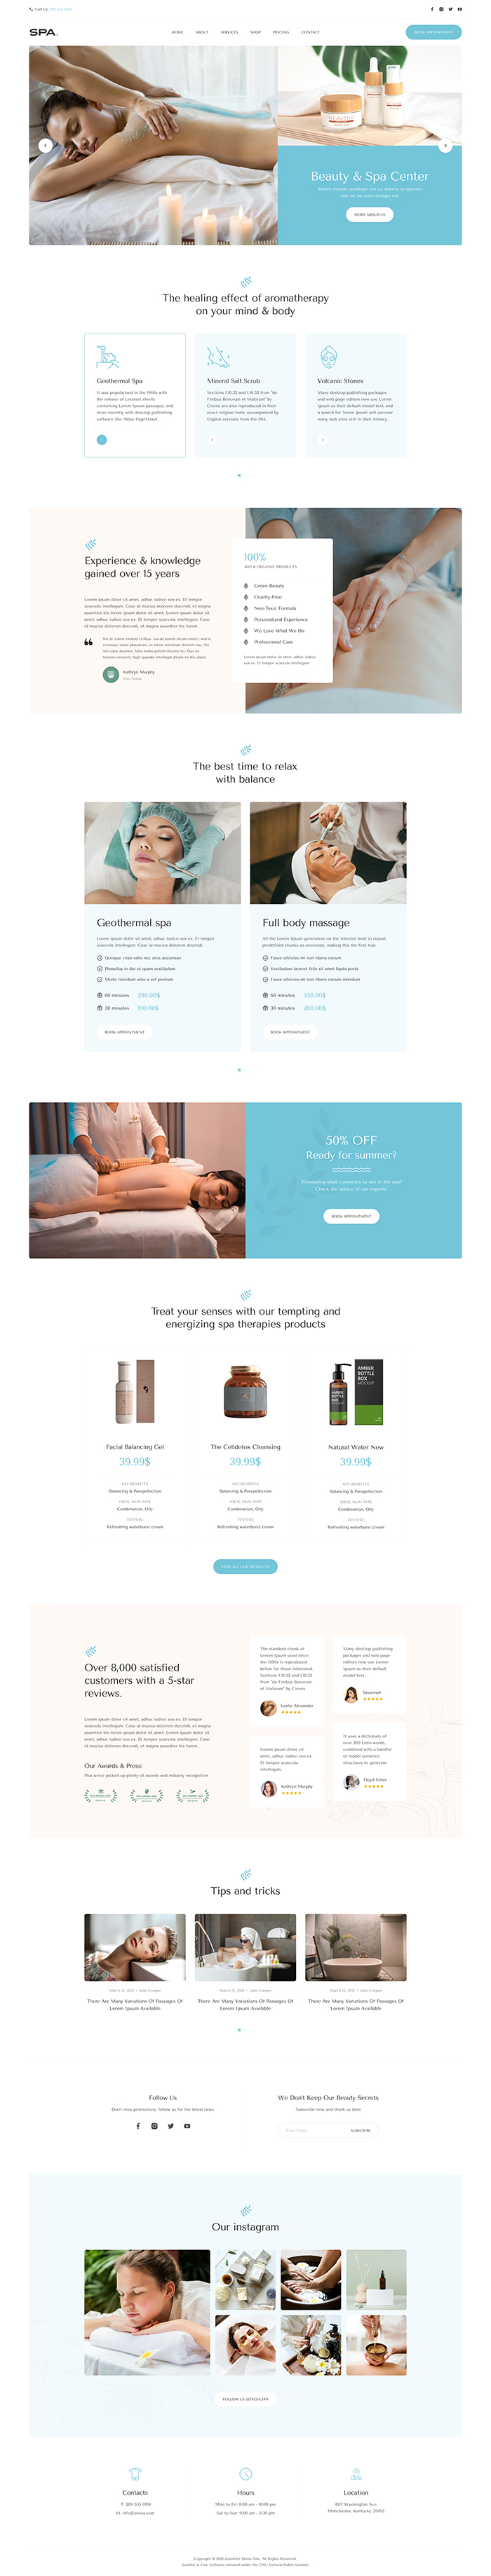 joomla page builder template for spa and beauty salon